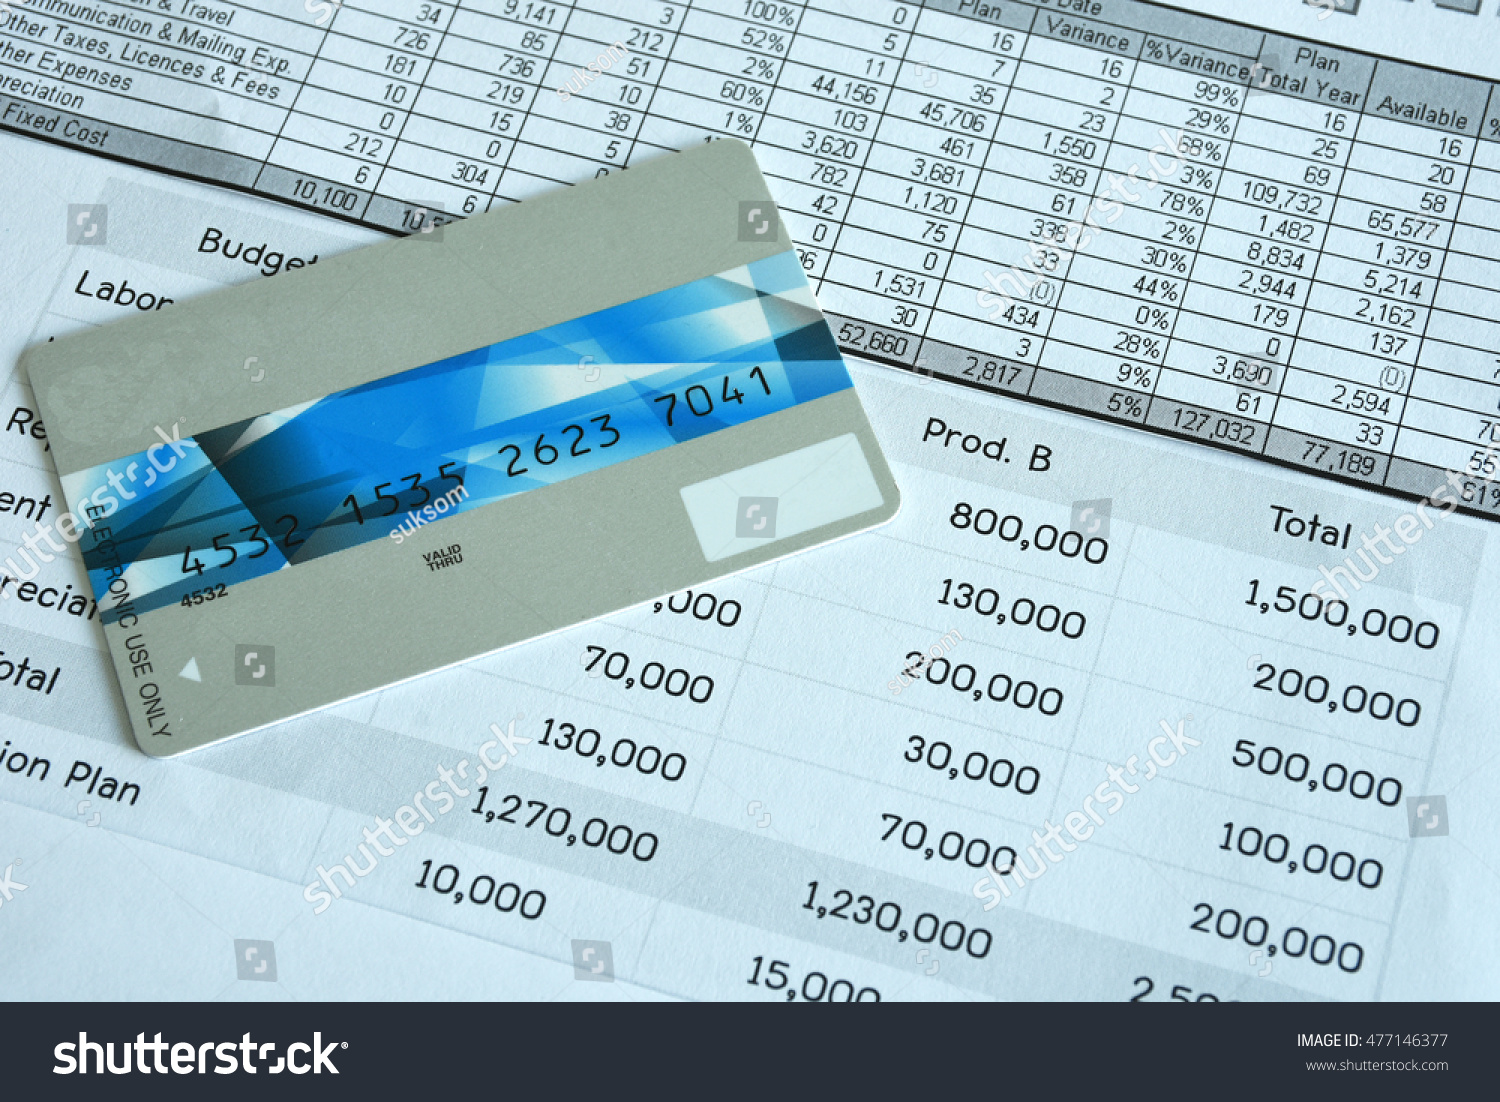 Business credit cards wiki gallery card design and card template best business cards wiki pictures inspiration business card ideas business credit card wiki gallery card design colourmoves Choice Image